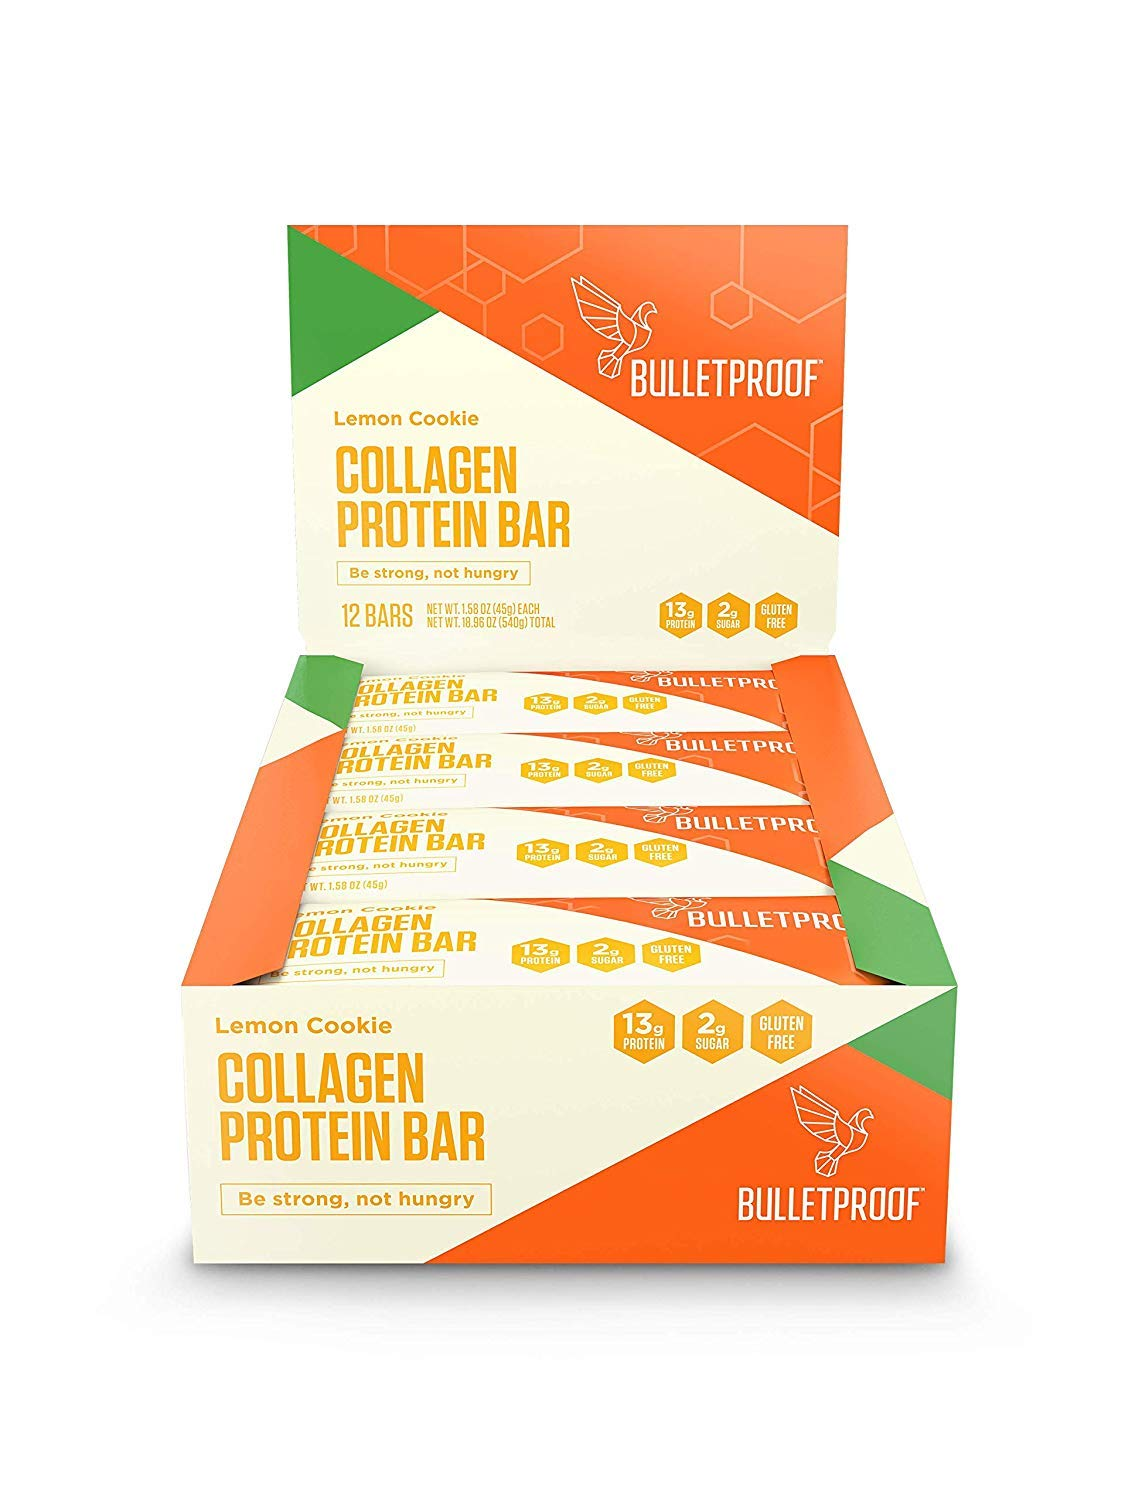 Bulletproof Bars Collagen Protein, Perfect Snack for Keto Diet, Paleo, Gluten-Free, for Men, Women, and Kids (Lemon Cookie) by Bulletproof